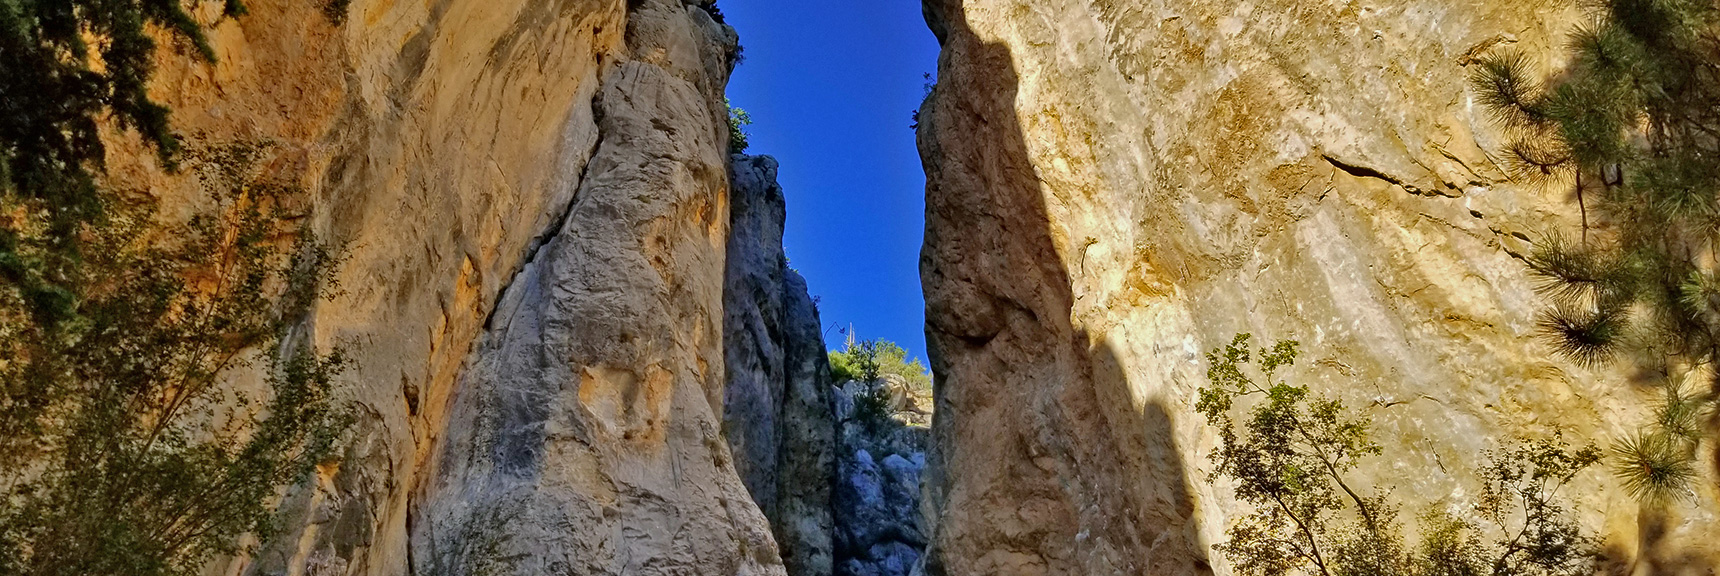 Robbers Roost | Mt Charleston Wilderness | Spring Mountains, Nevada